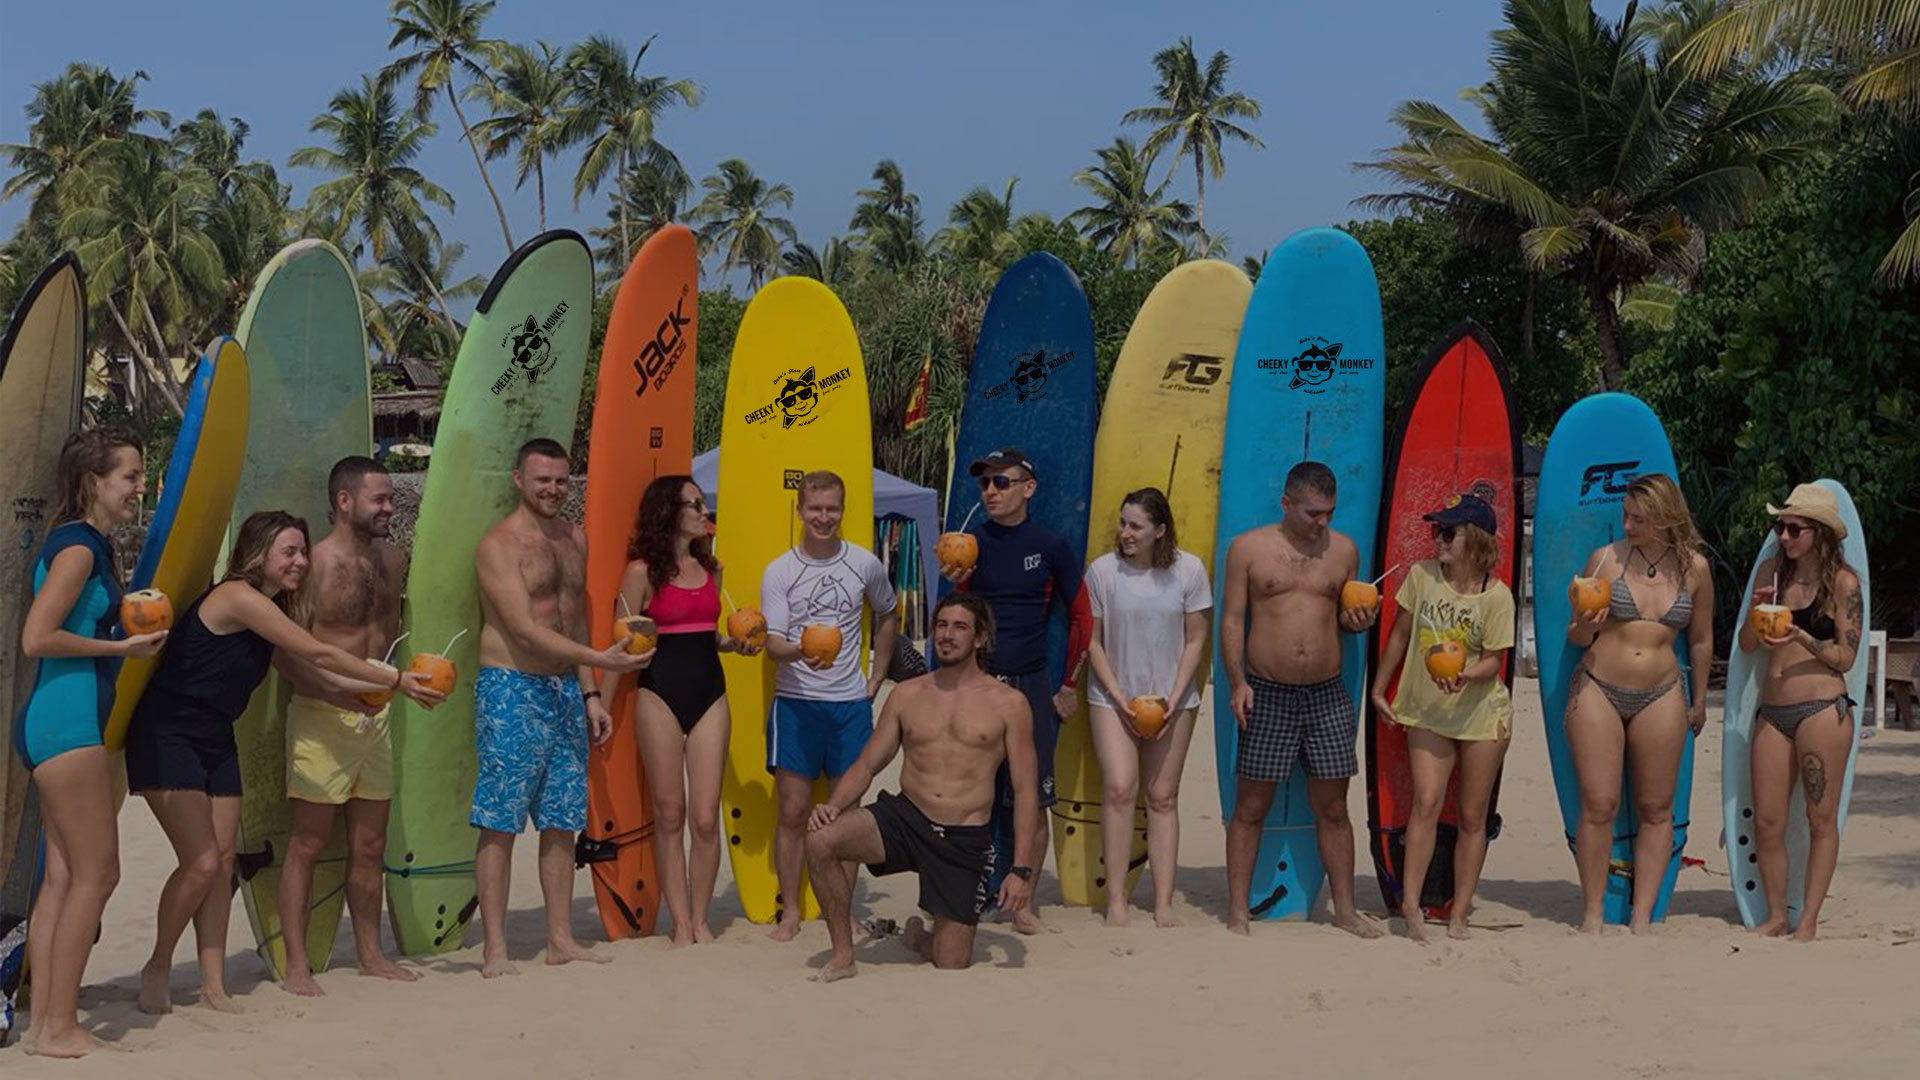 Surfers with surfboards at Cheeky Monkey srf camp